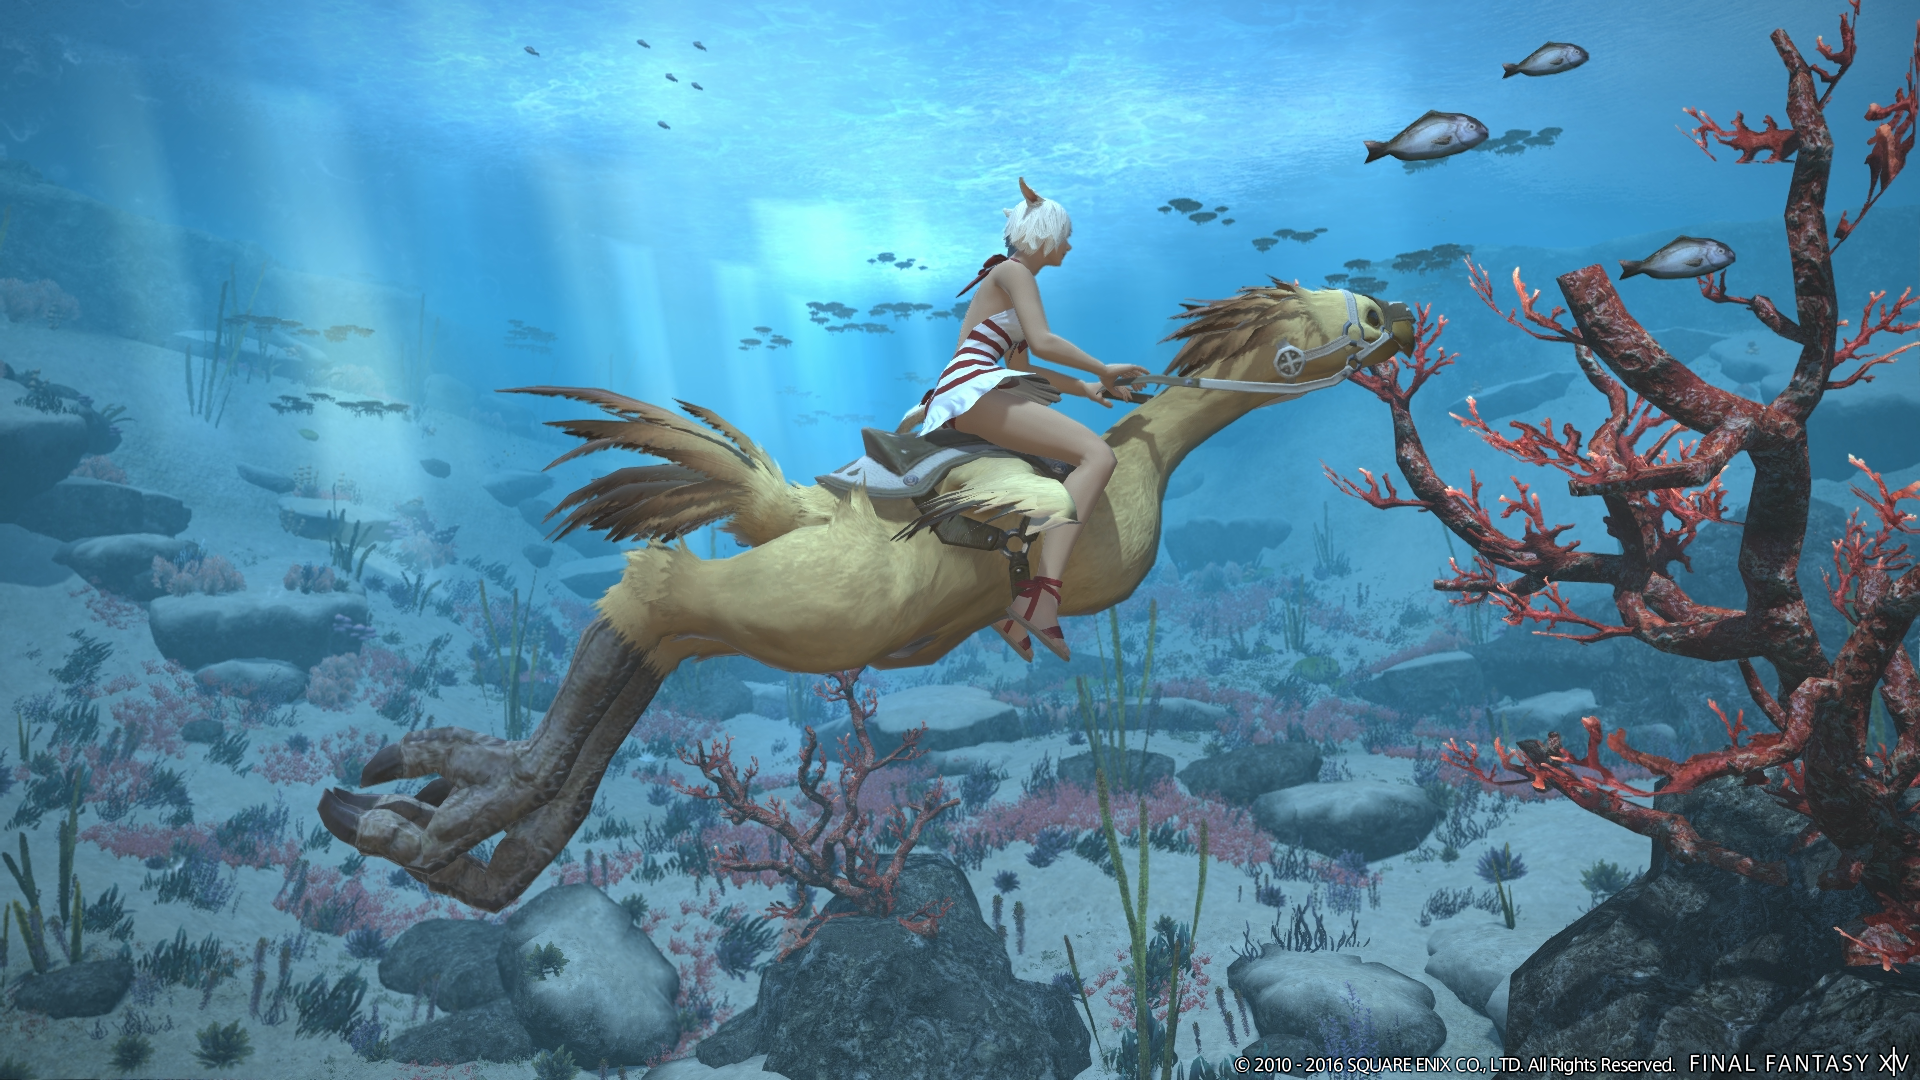 New Final Fantasy XIV Expansion Coming This Summer